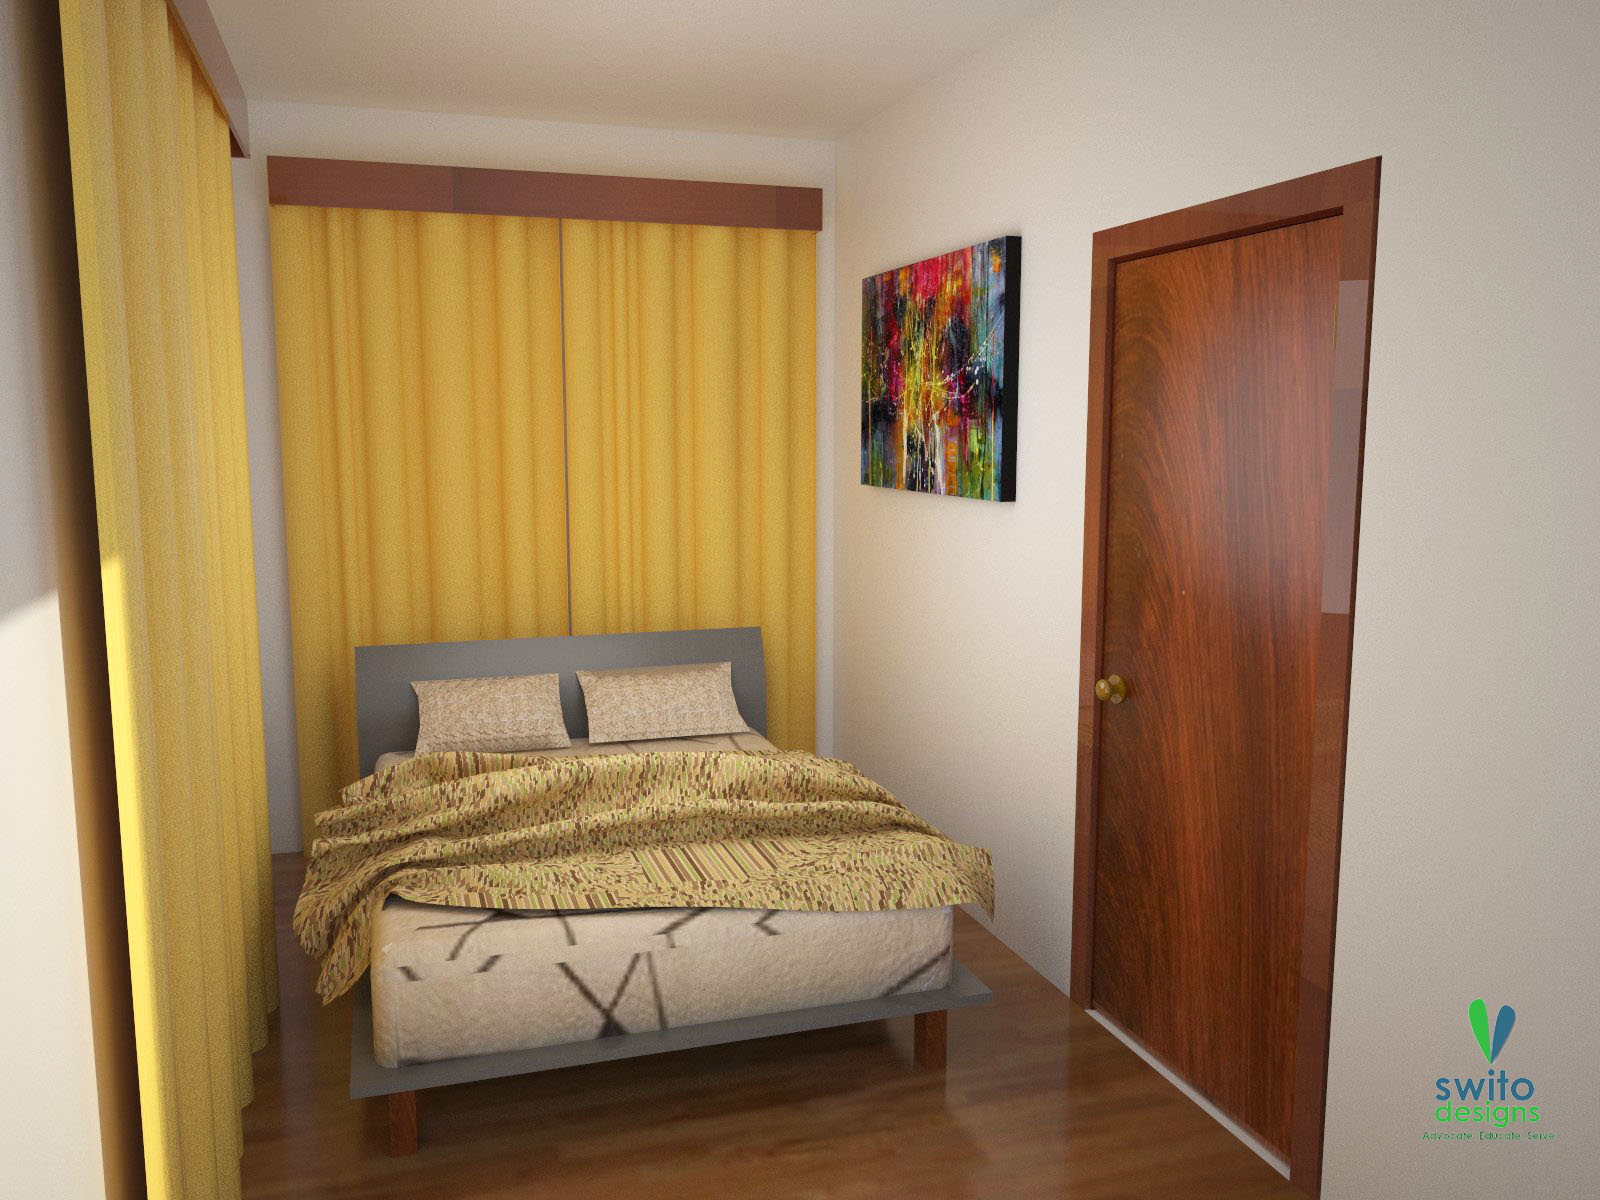 interior designing of bedroom 2. Woodsy with a lot of Bamboo Accents is our signature interior design look  for small houses like this HOUSES Swito Designs Inc Architecture and Interior Design Company